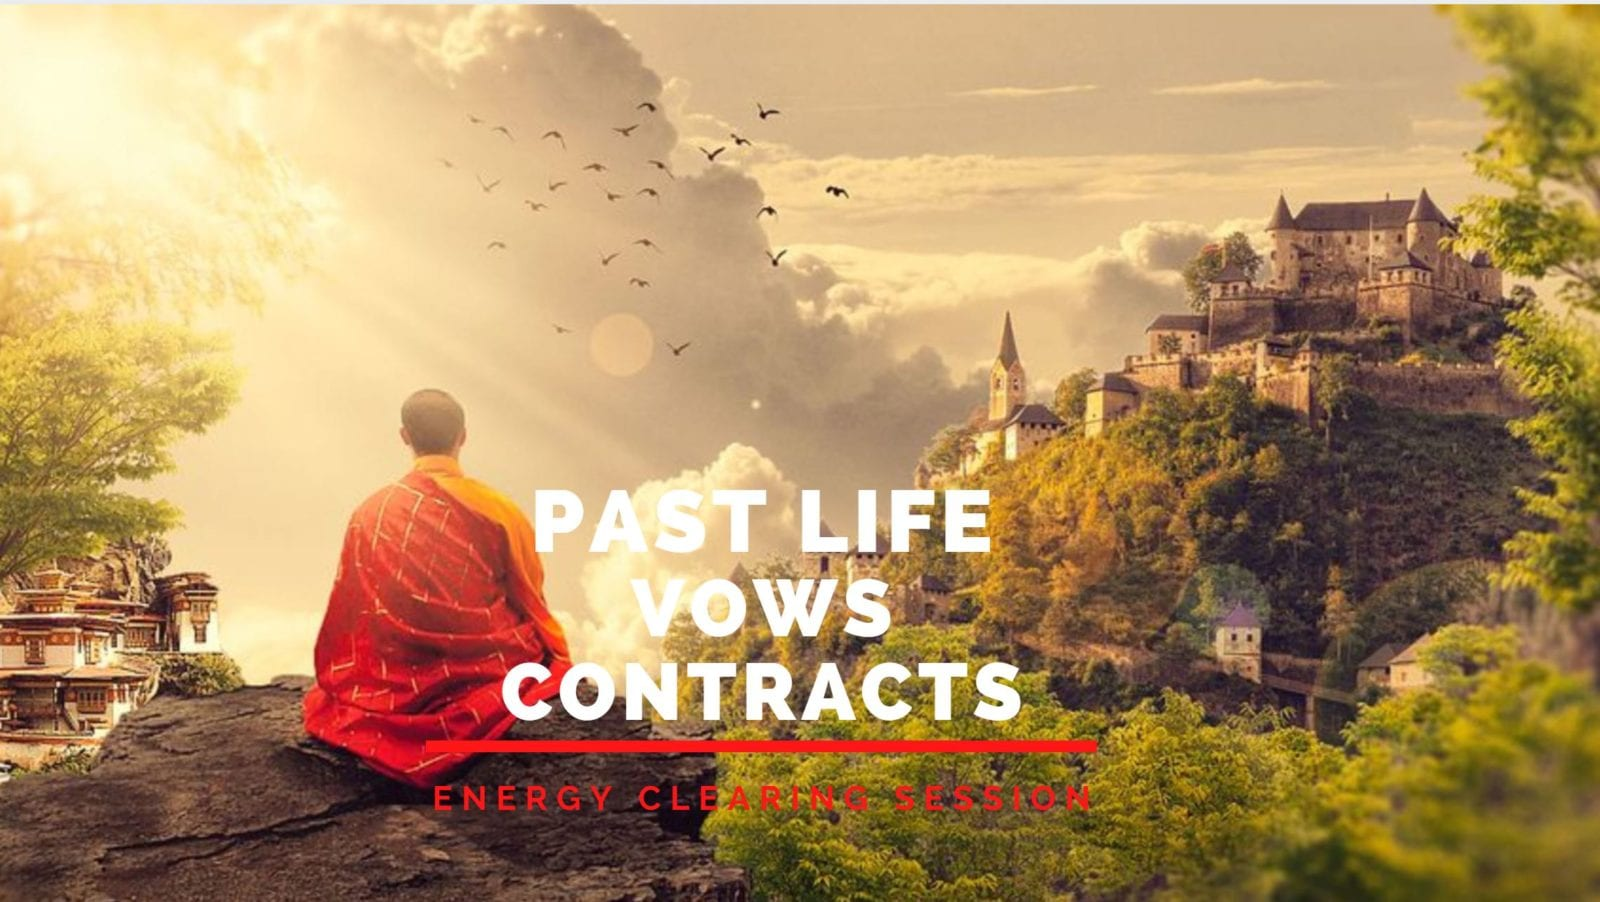 Past Life Vows and Contracts